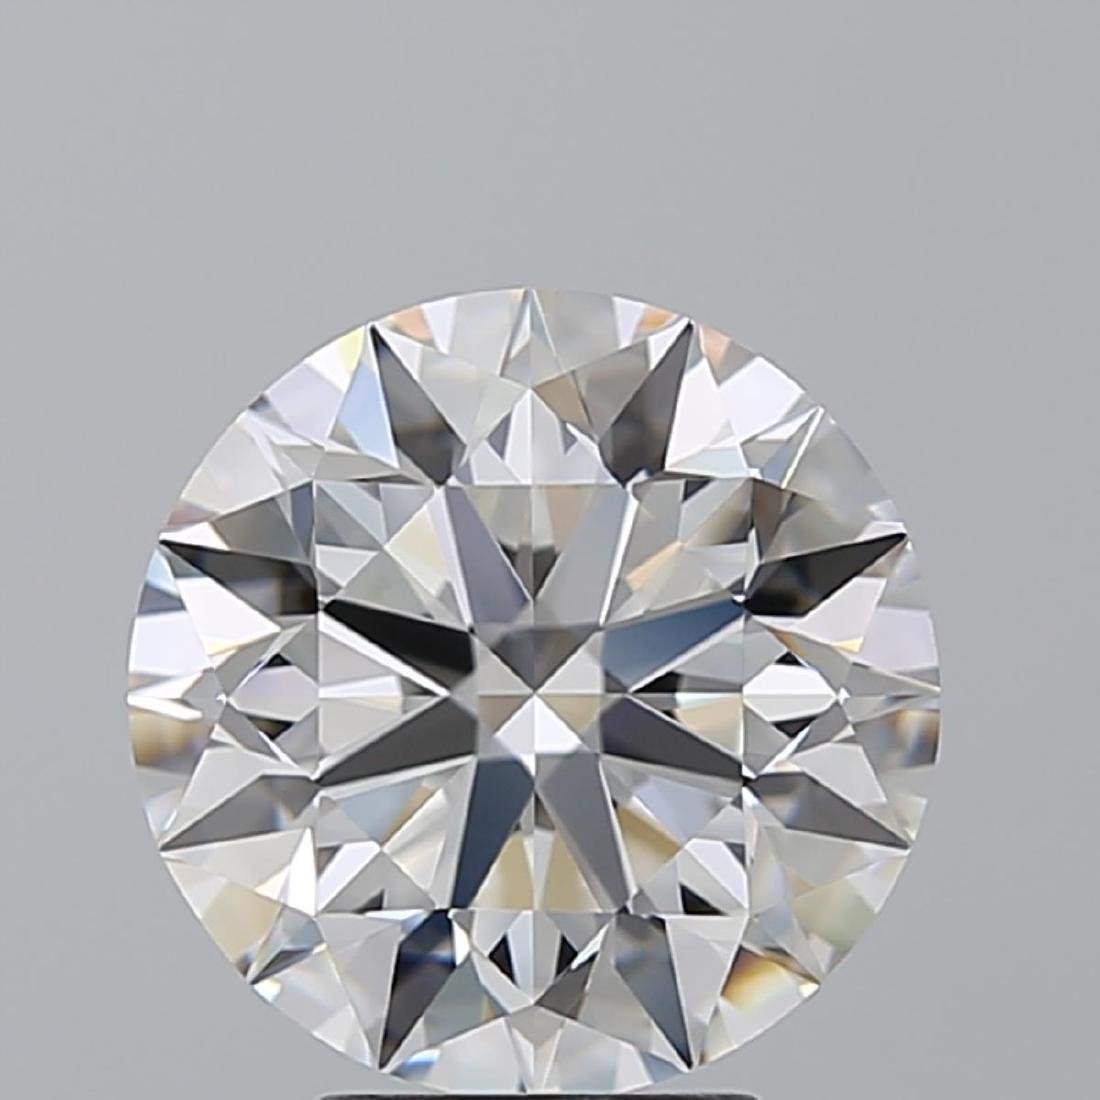 4.02 ct, Color F/VS1, Round cut Diamond - 2